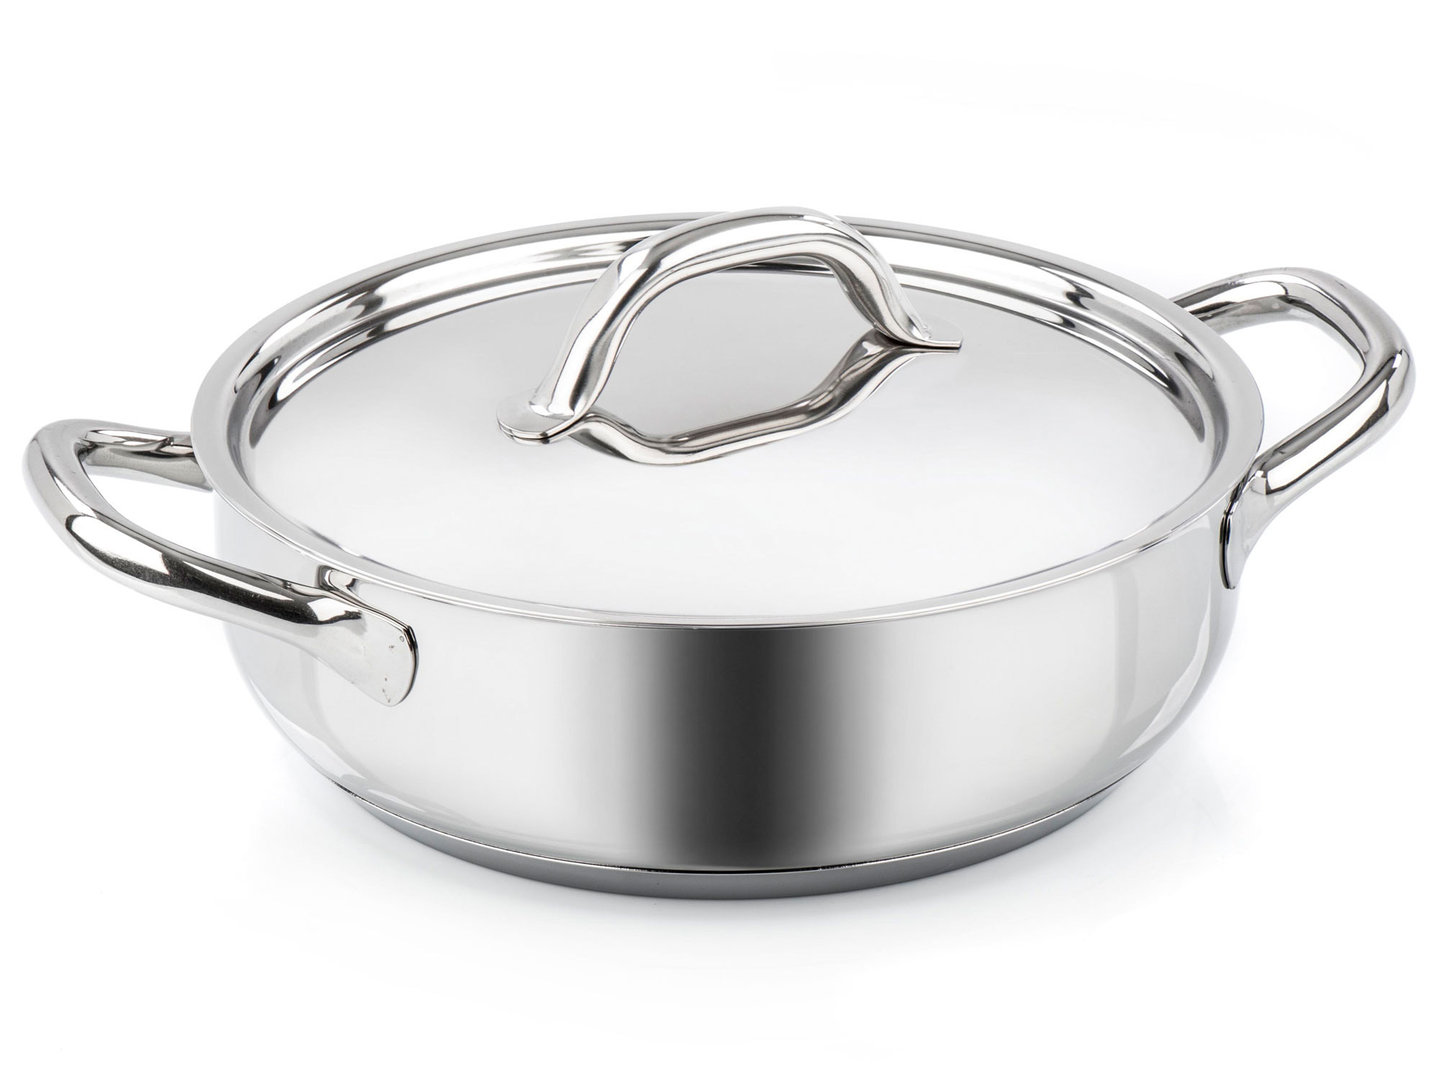 BARAZZONI shallow casserole CHEF LINE stainless steel 28 cm with lid 4.5 L